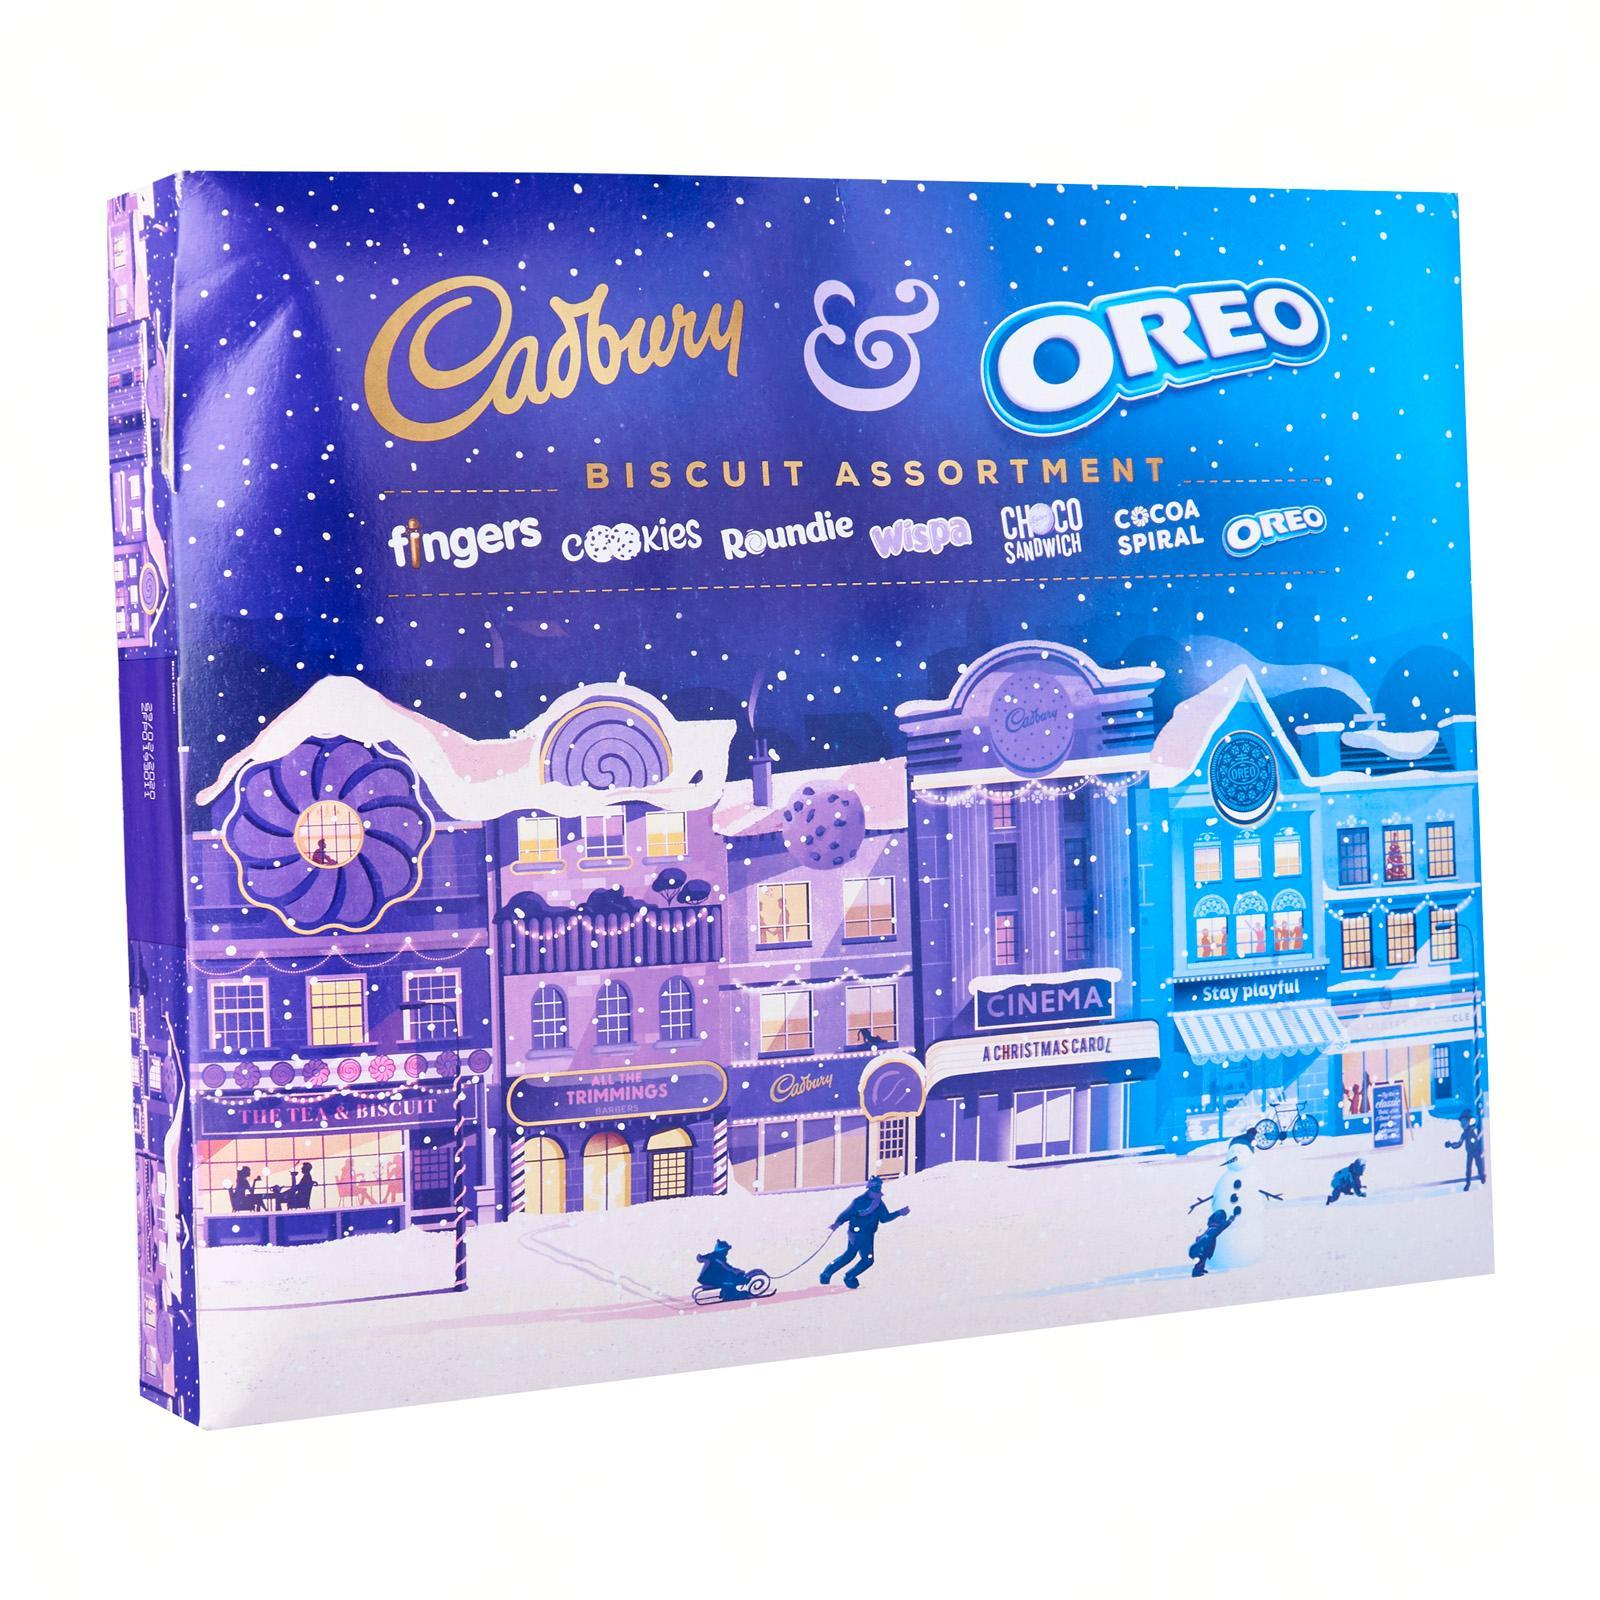 CADBURY Chocolate And Oreo Biscuits Assortment - Christmas Special